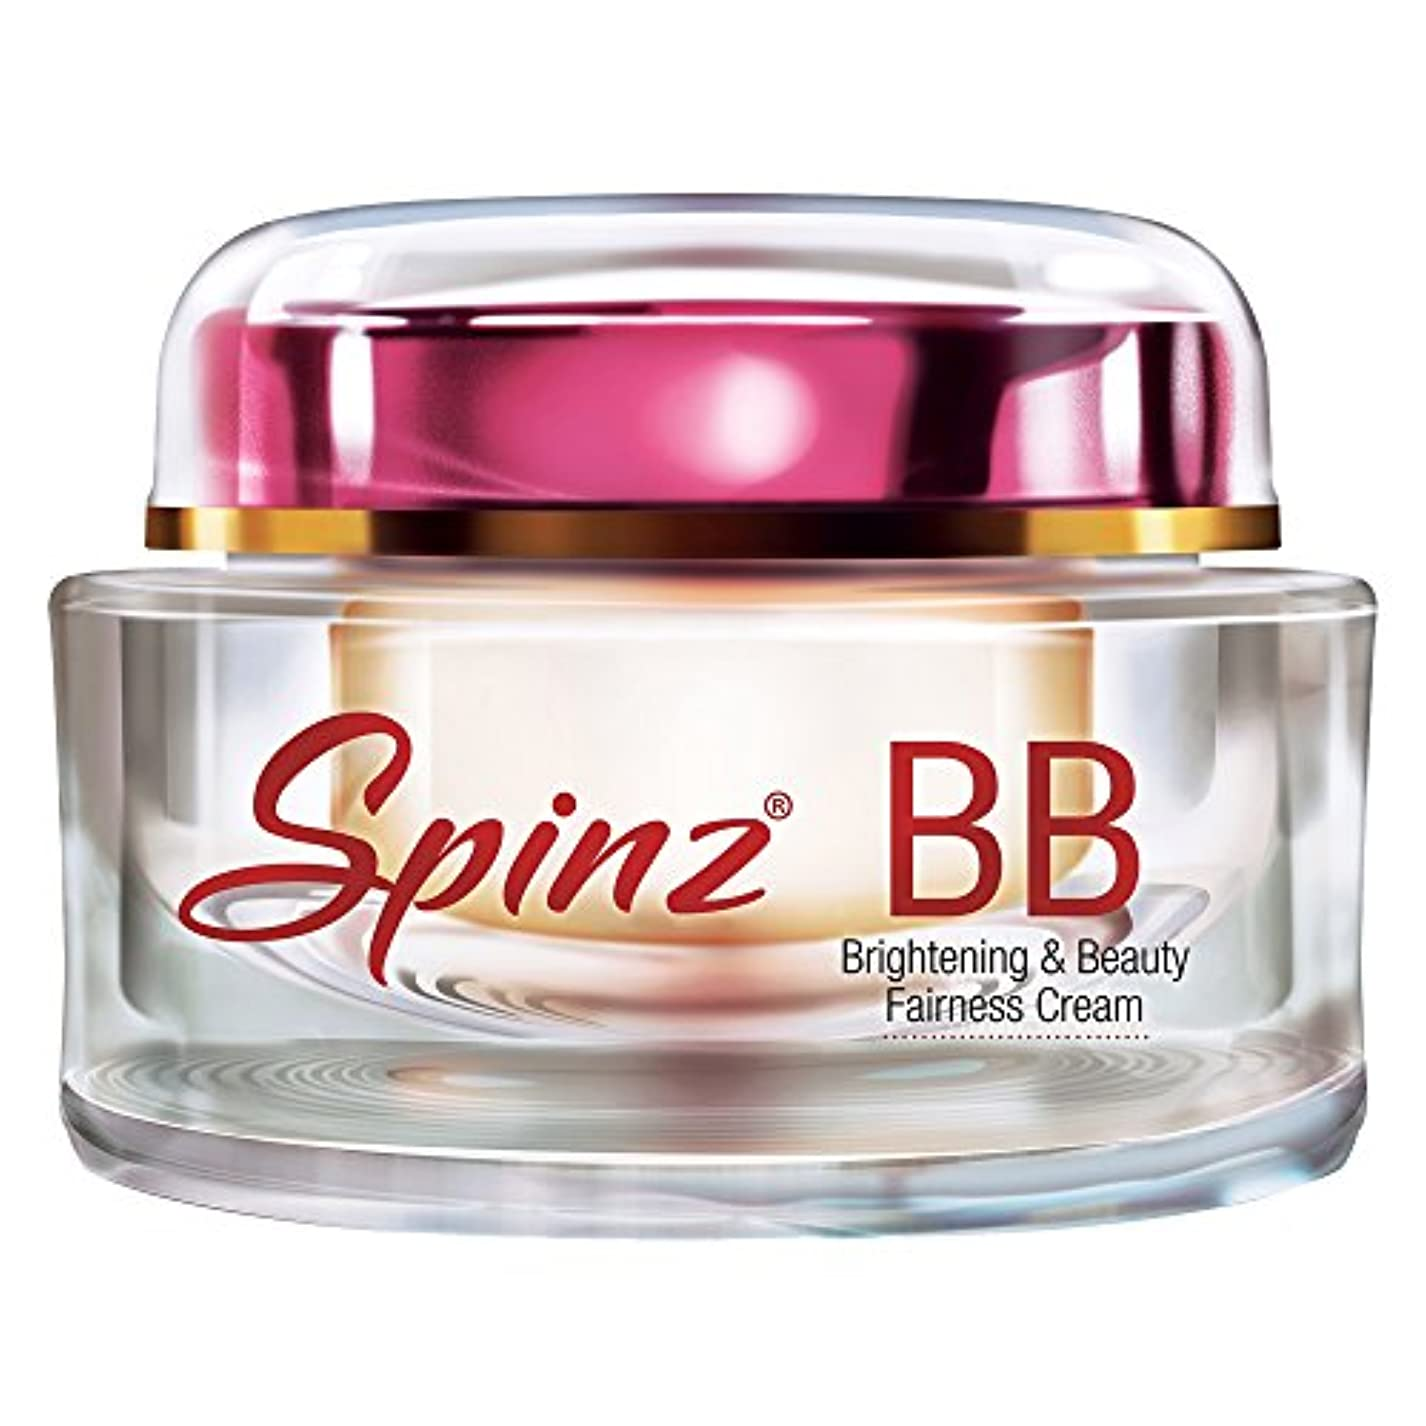 Spinz BB Fairness Cream, 50gm